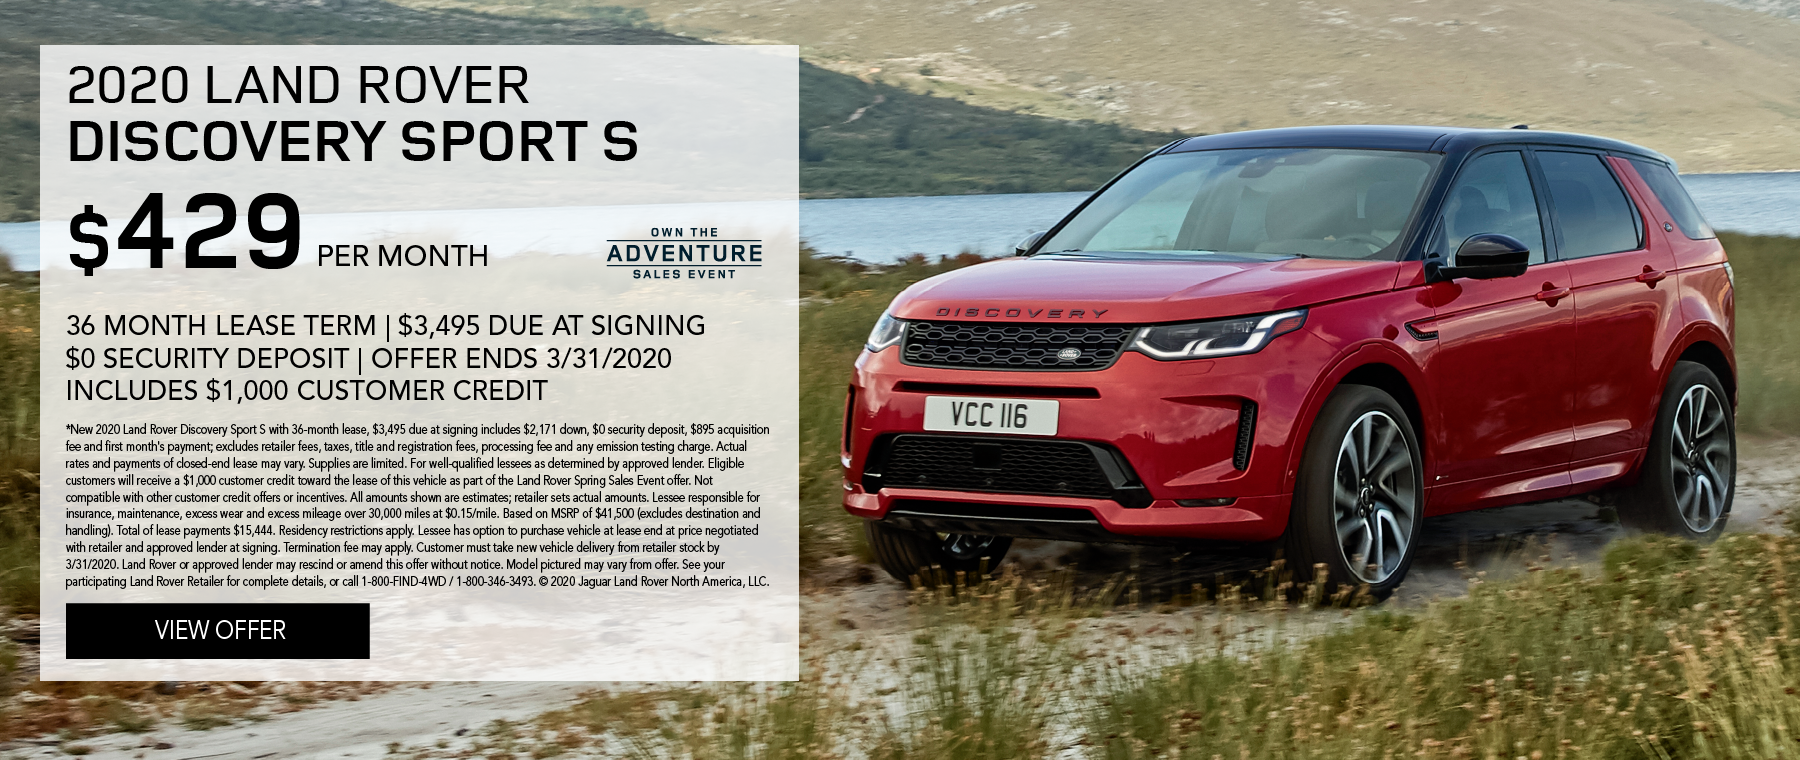 2020 LAND ROVER DISCOVERY SPORT S PARKED ON GRAVEL AND GRASSY TERRAIN WITH WATER IN BACKGROUND. $429 PER MONTH. 36 MONTH LEASE TERM. $3,495 CASH DUE AT SIGNING. INCLUDES $1,000 CUSTOMER CREDIT. $0 SECURITY DEPOSIT. 10,000 MILES PER YEAR. OFFER ENDS 3/31/2020. OWN THE ADVENTURE SALES EVENT.